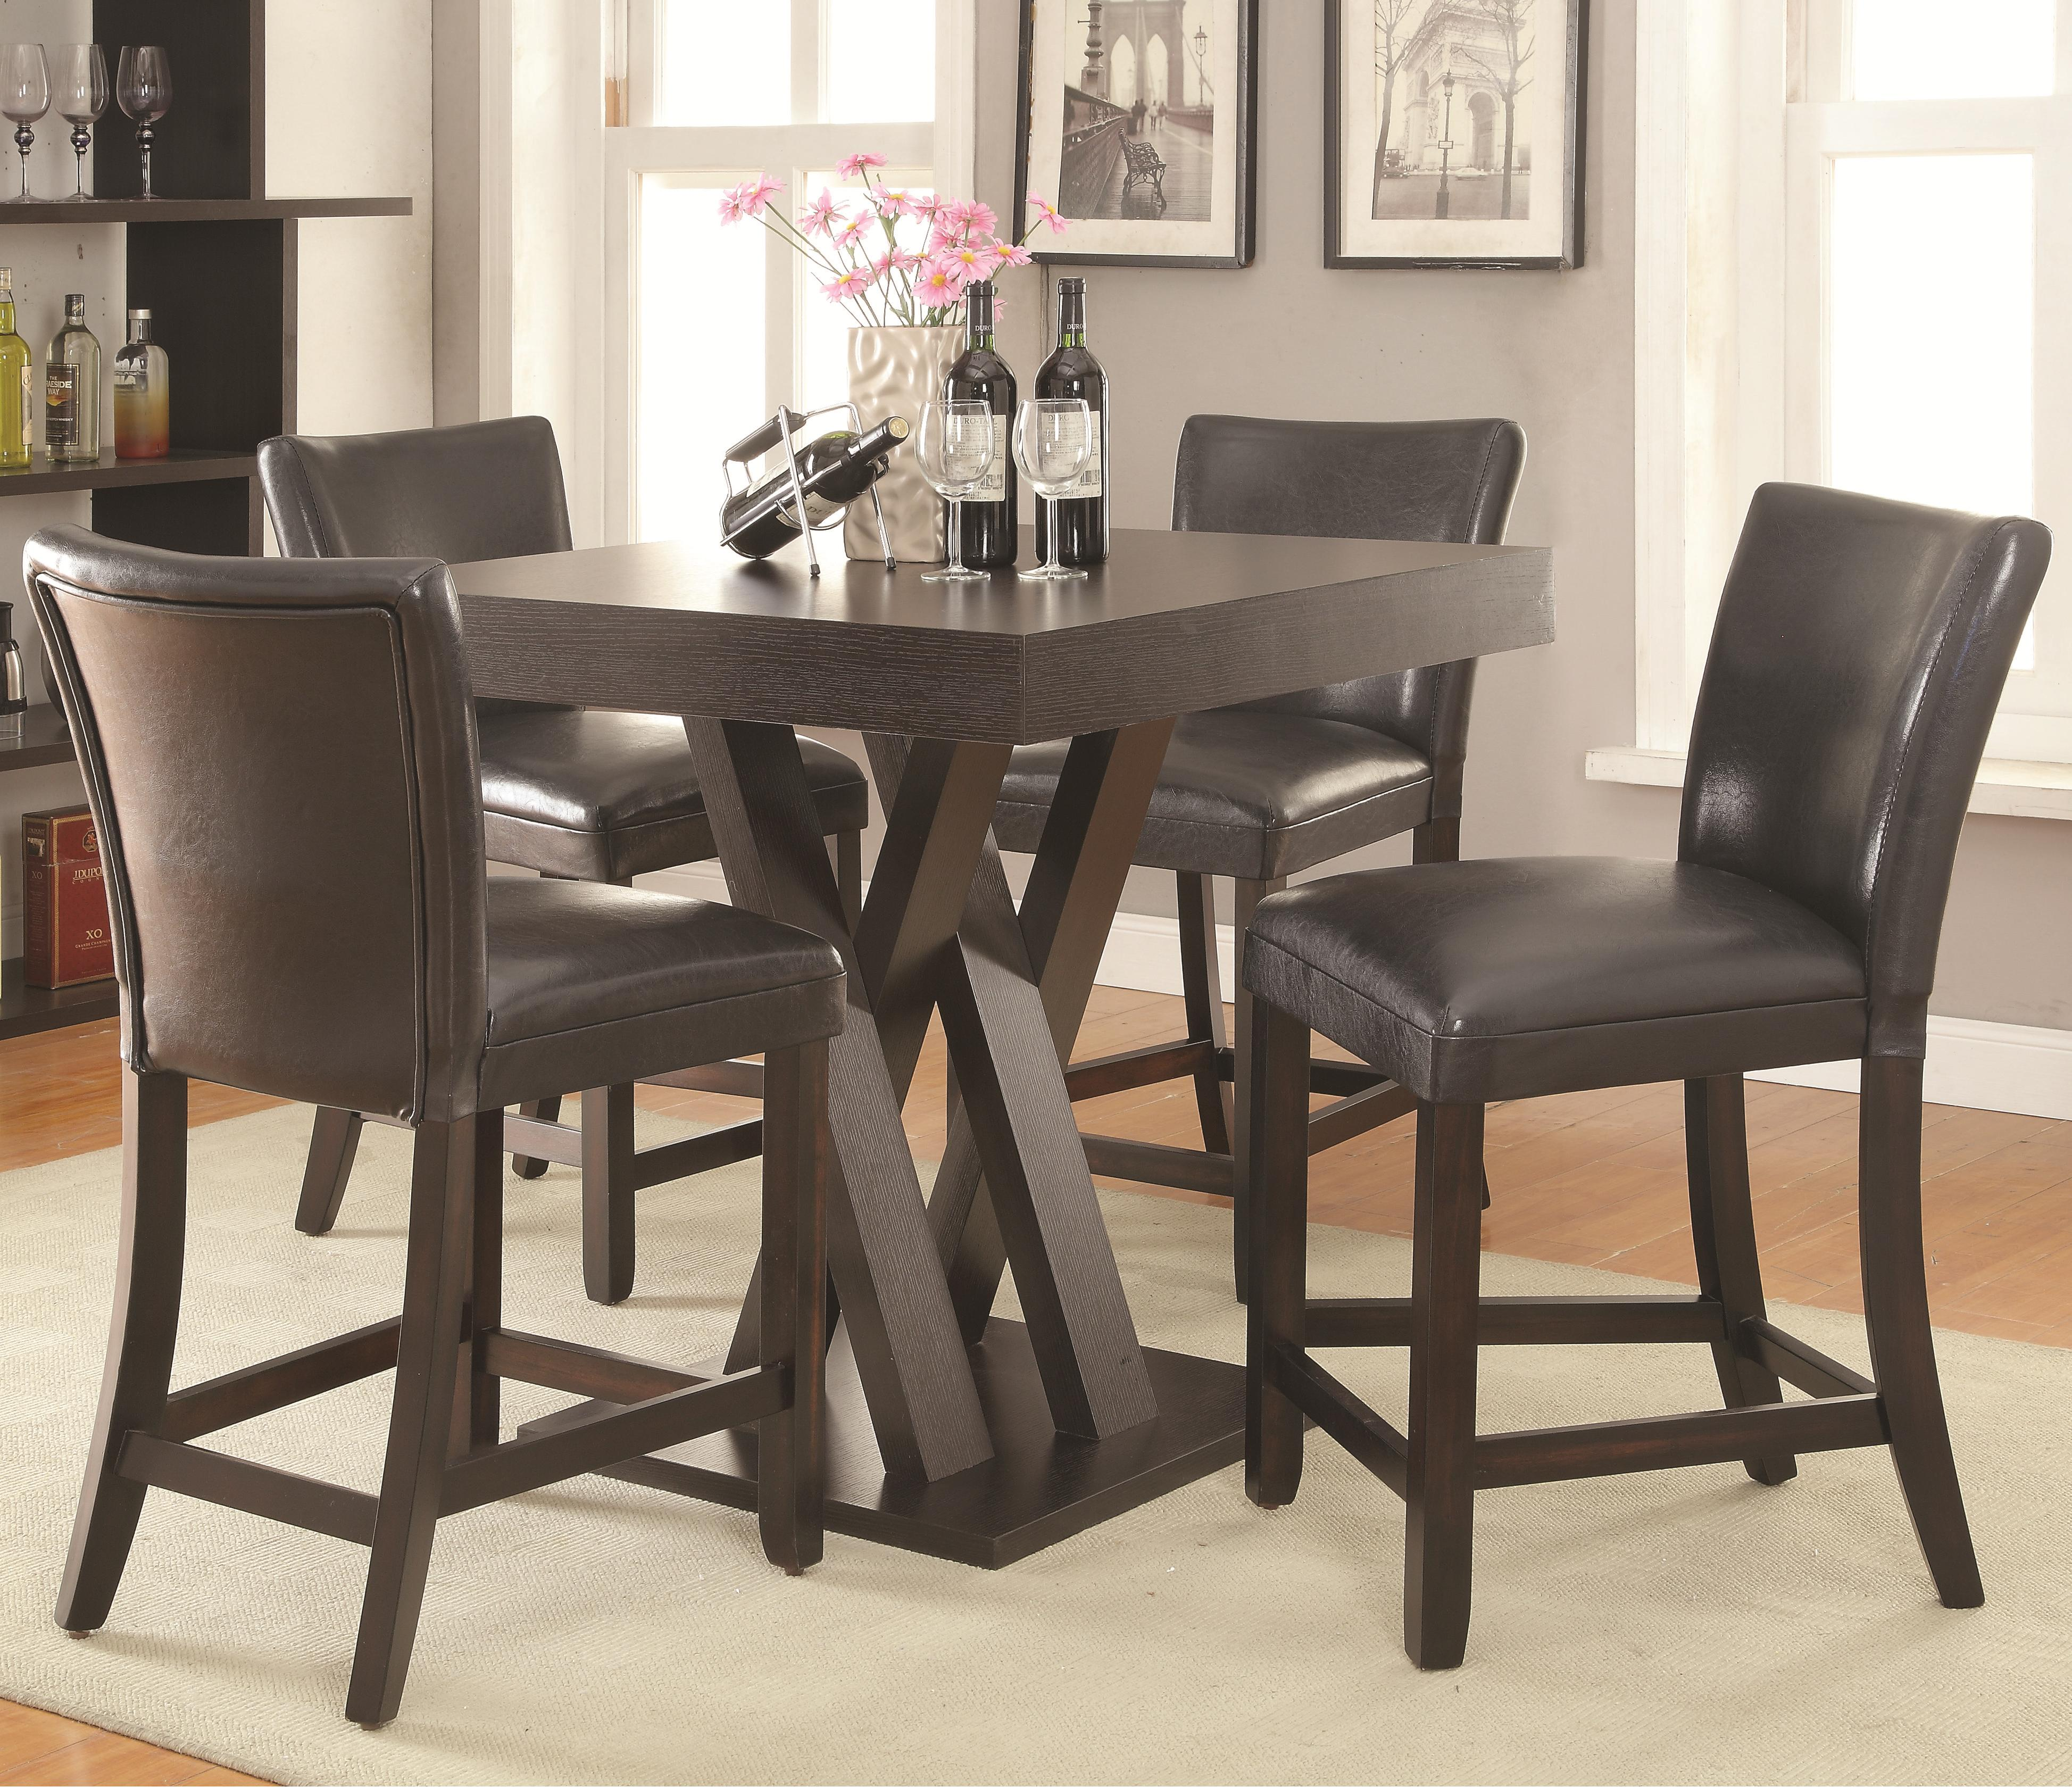 Units and Bar Tables Five Piece Counter Height Table Set with Stools ...